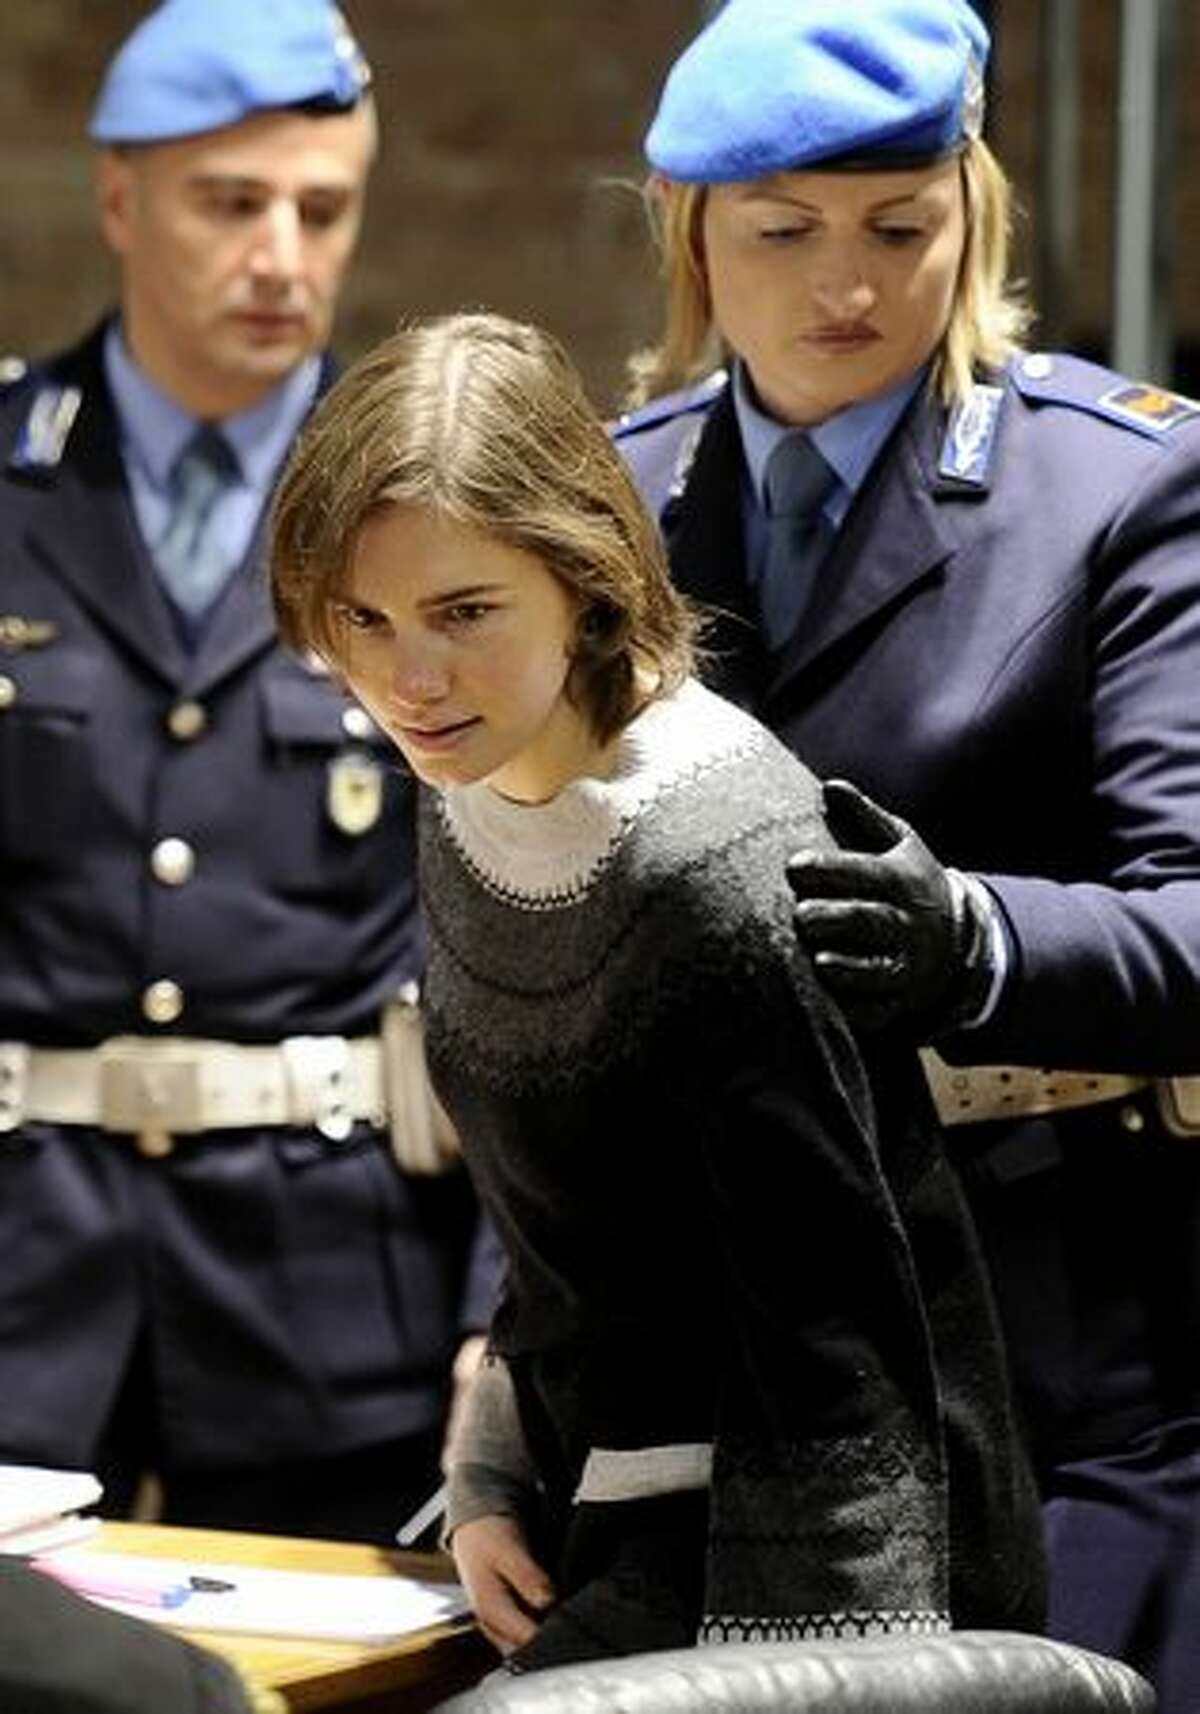 Amanda Knox (center) arrives in court before the start of the second hearing of her appeal. Lawyers for Knox said they would question DNA evidence linking her to the crime.